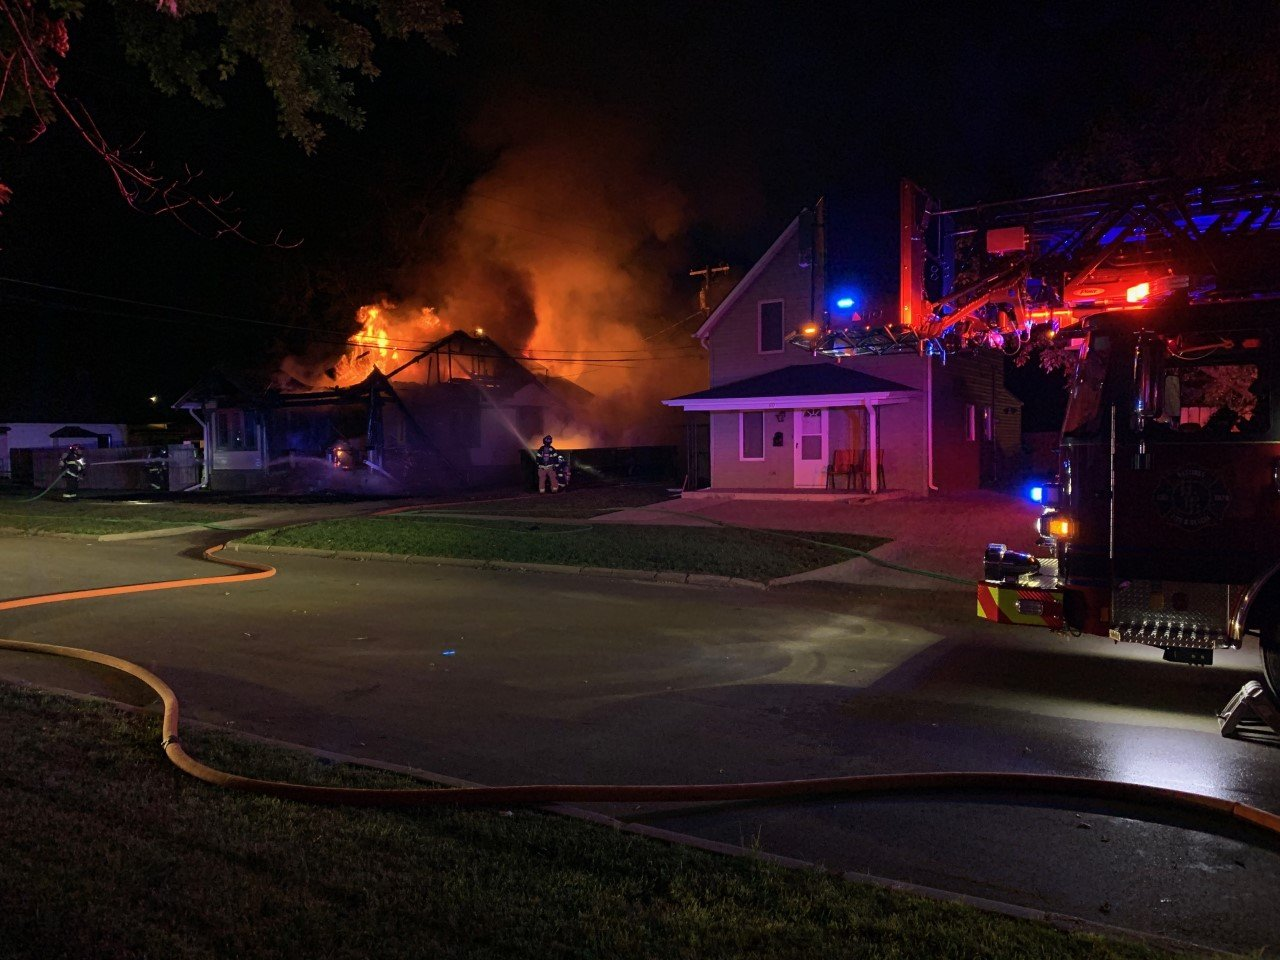 Structure fire in Hastings resulted in severe damage, no injuries